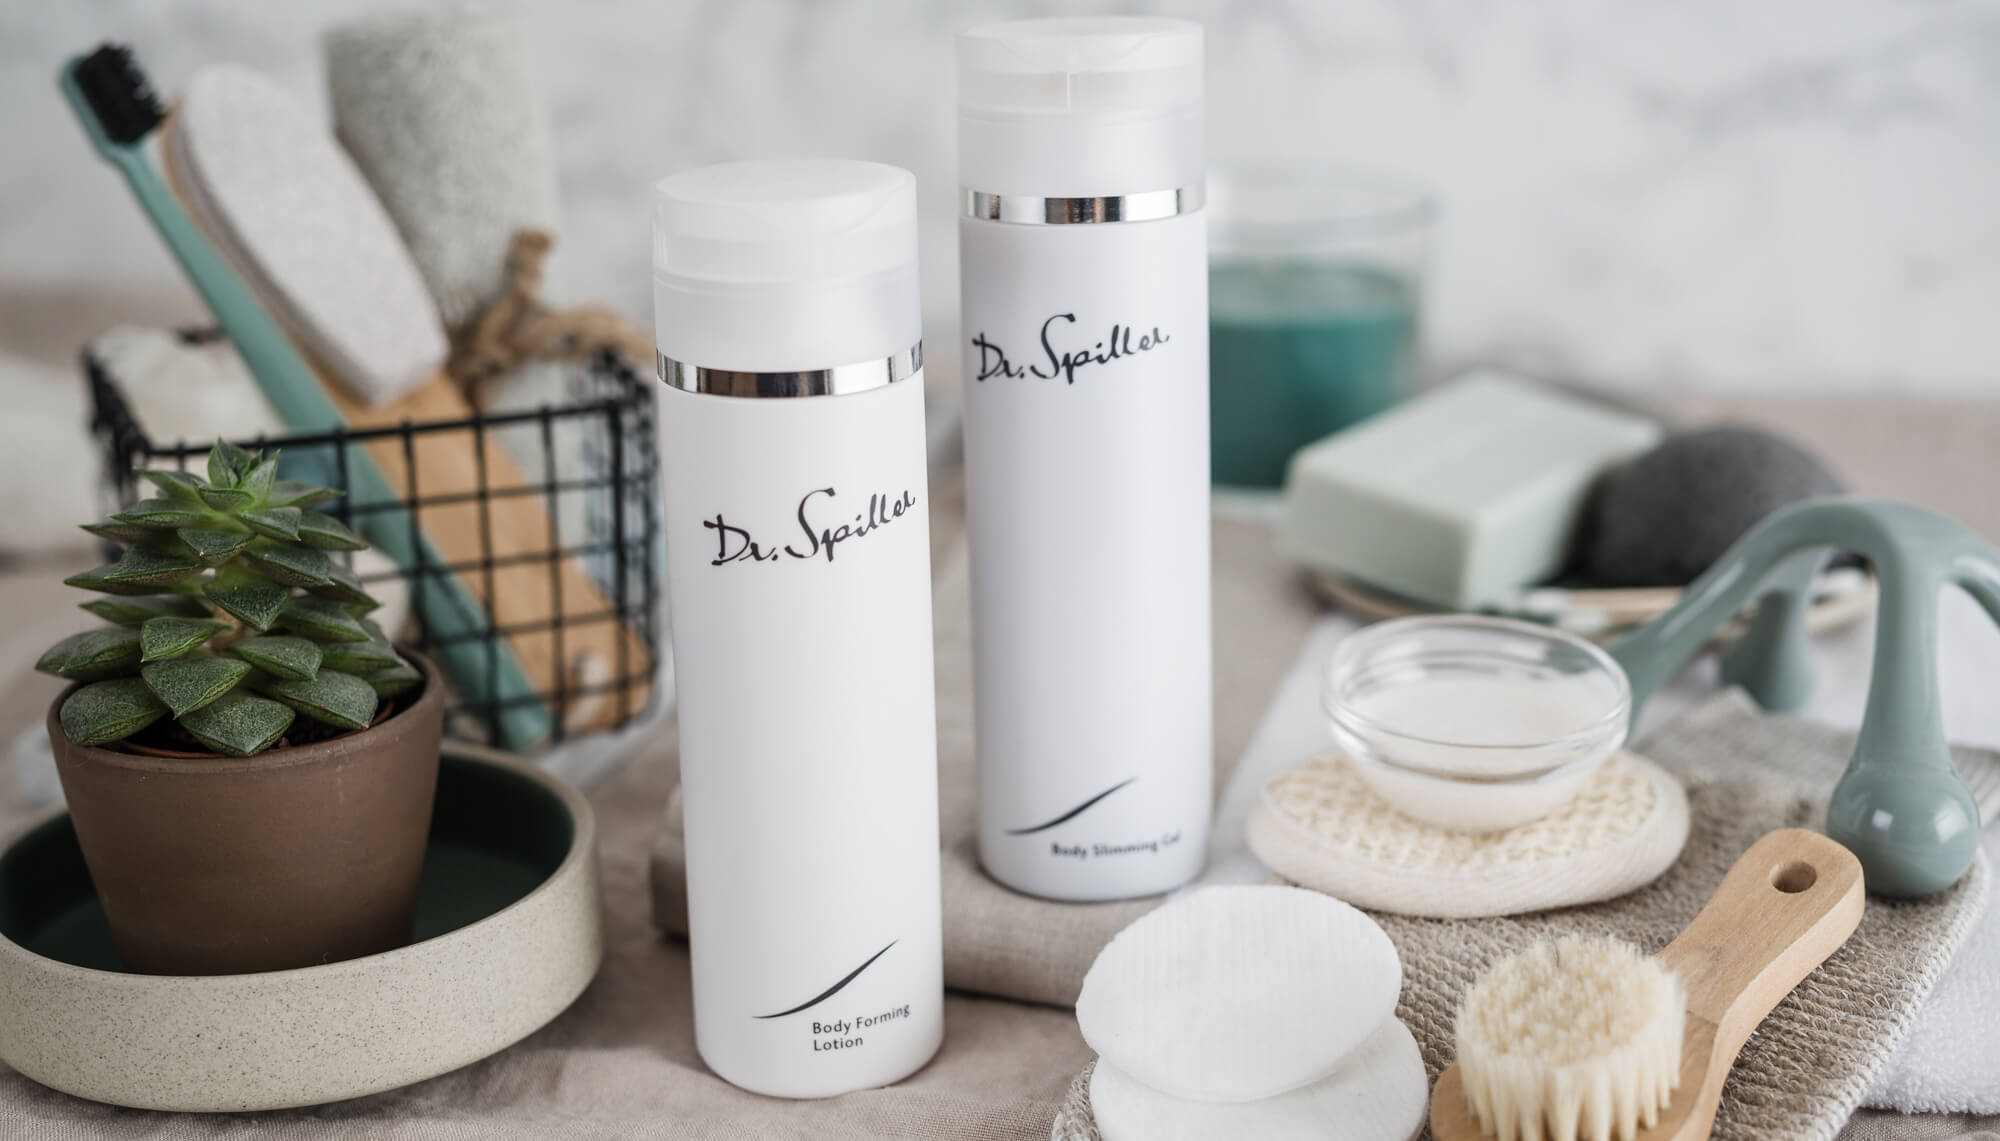 Review giải mã Dr Spiller Body Forming Lotion giảm mỡ, eo thon hot nhất hiện nay